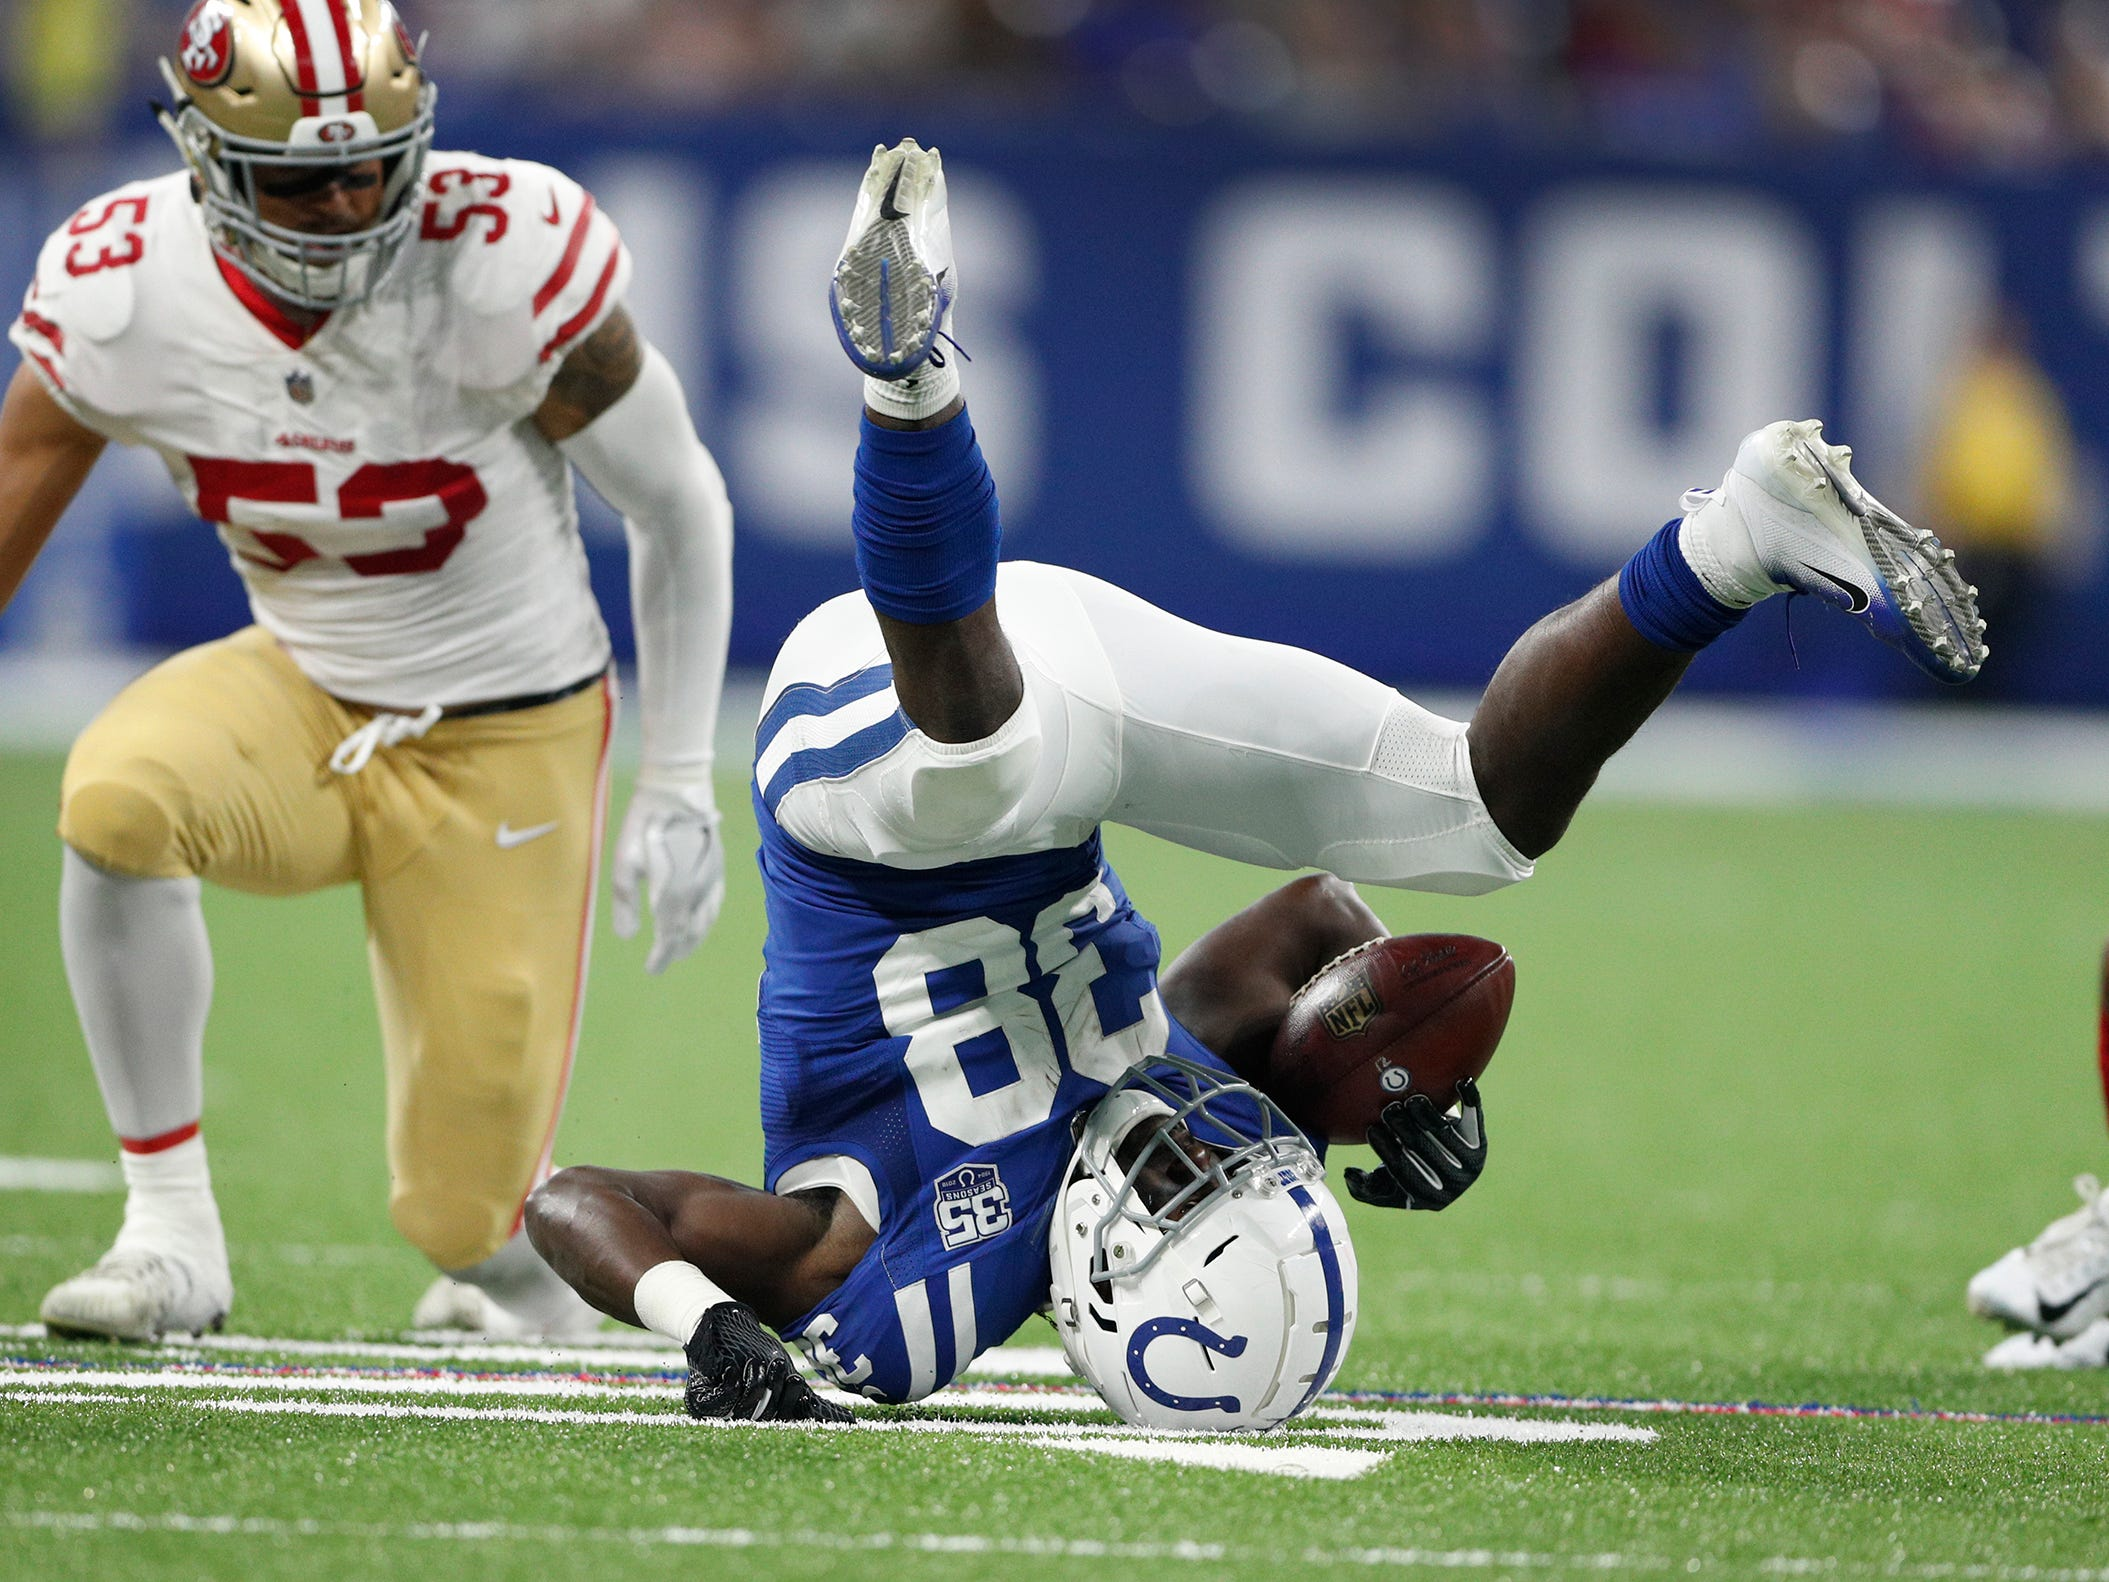 Indianapolis Colts running back Christine Michael (38) is knocked backwards by San Francisco 49ers outside linebacker Mark Nzeocha (53) in the second half of their preseason football game at Lucas Oil Stadium Saturday, August 25, 2018. The Colts defeated the 49ers 23-17.